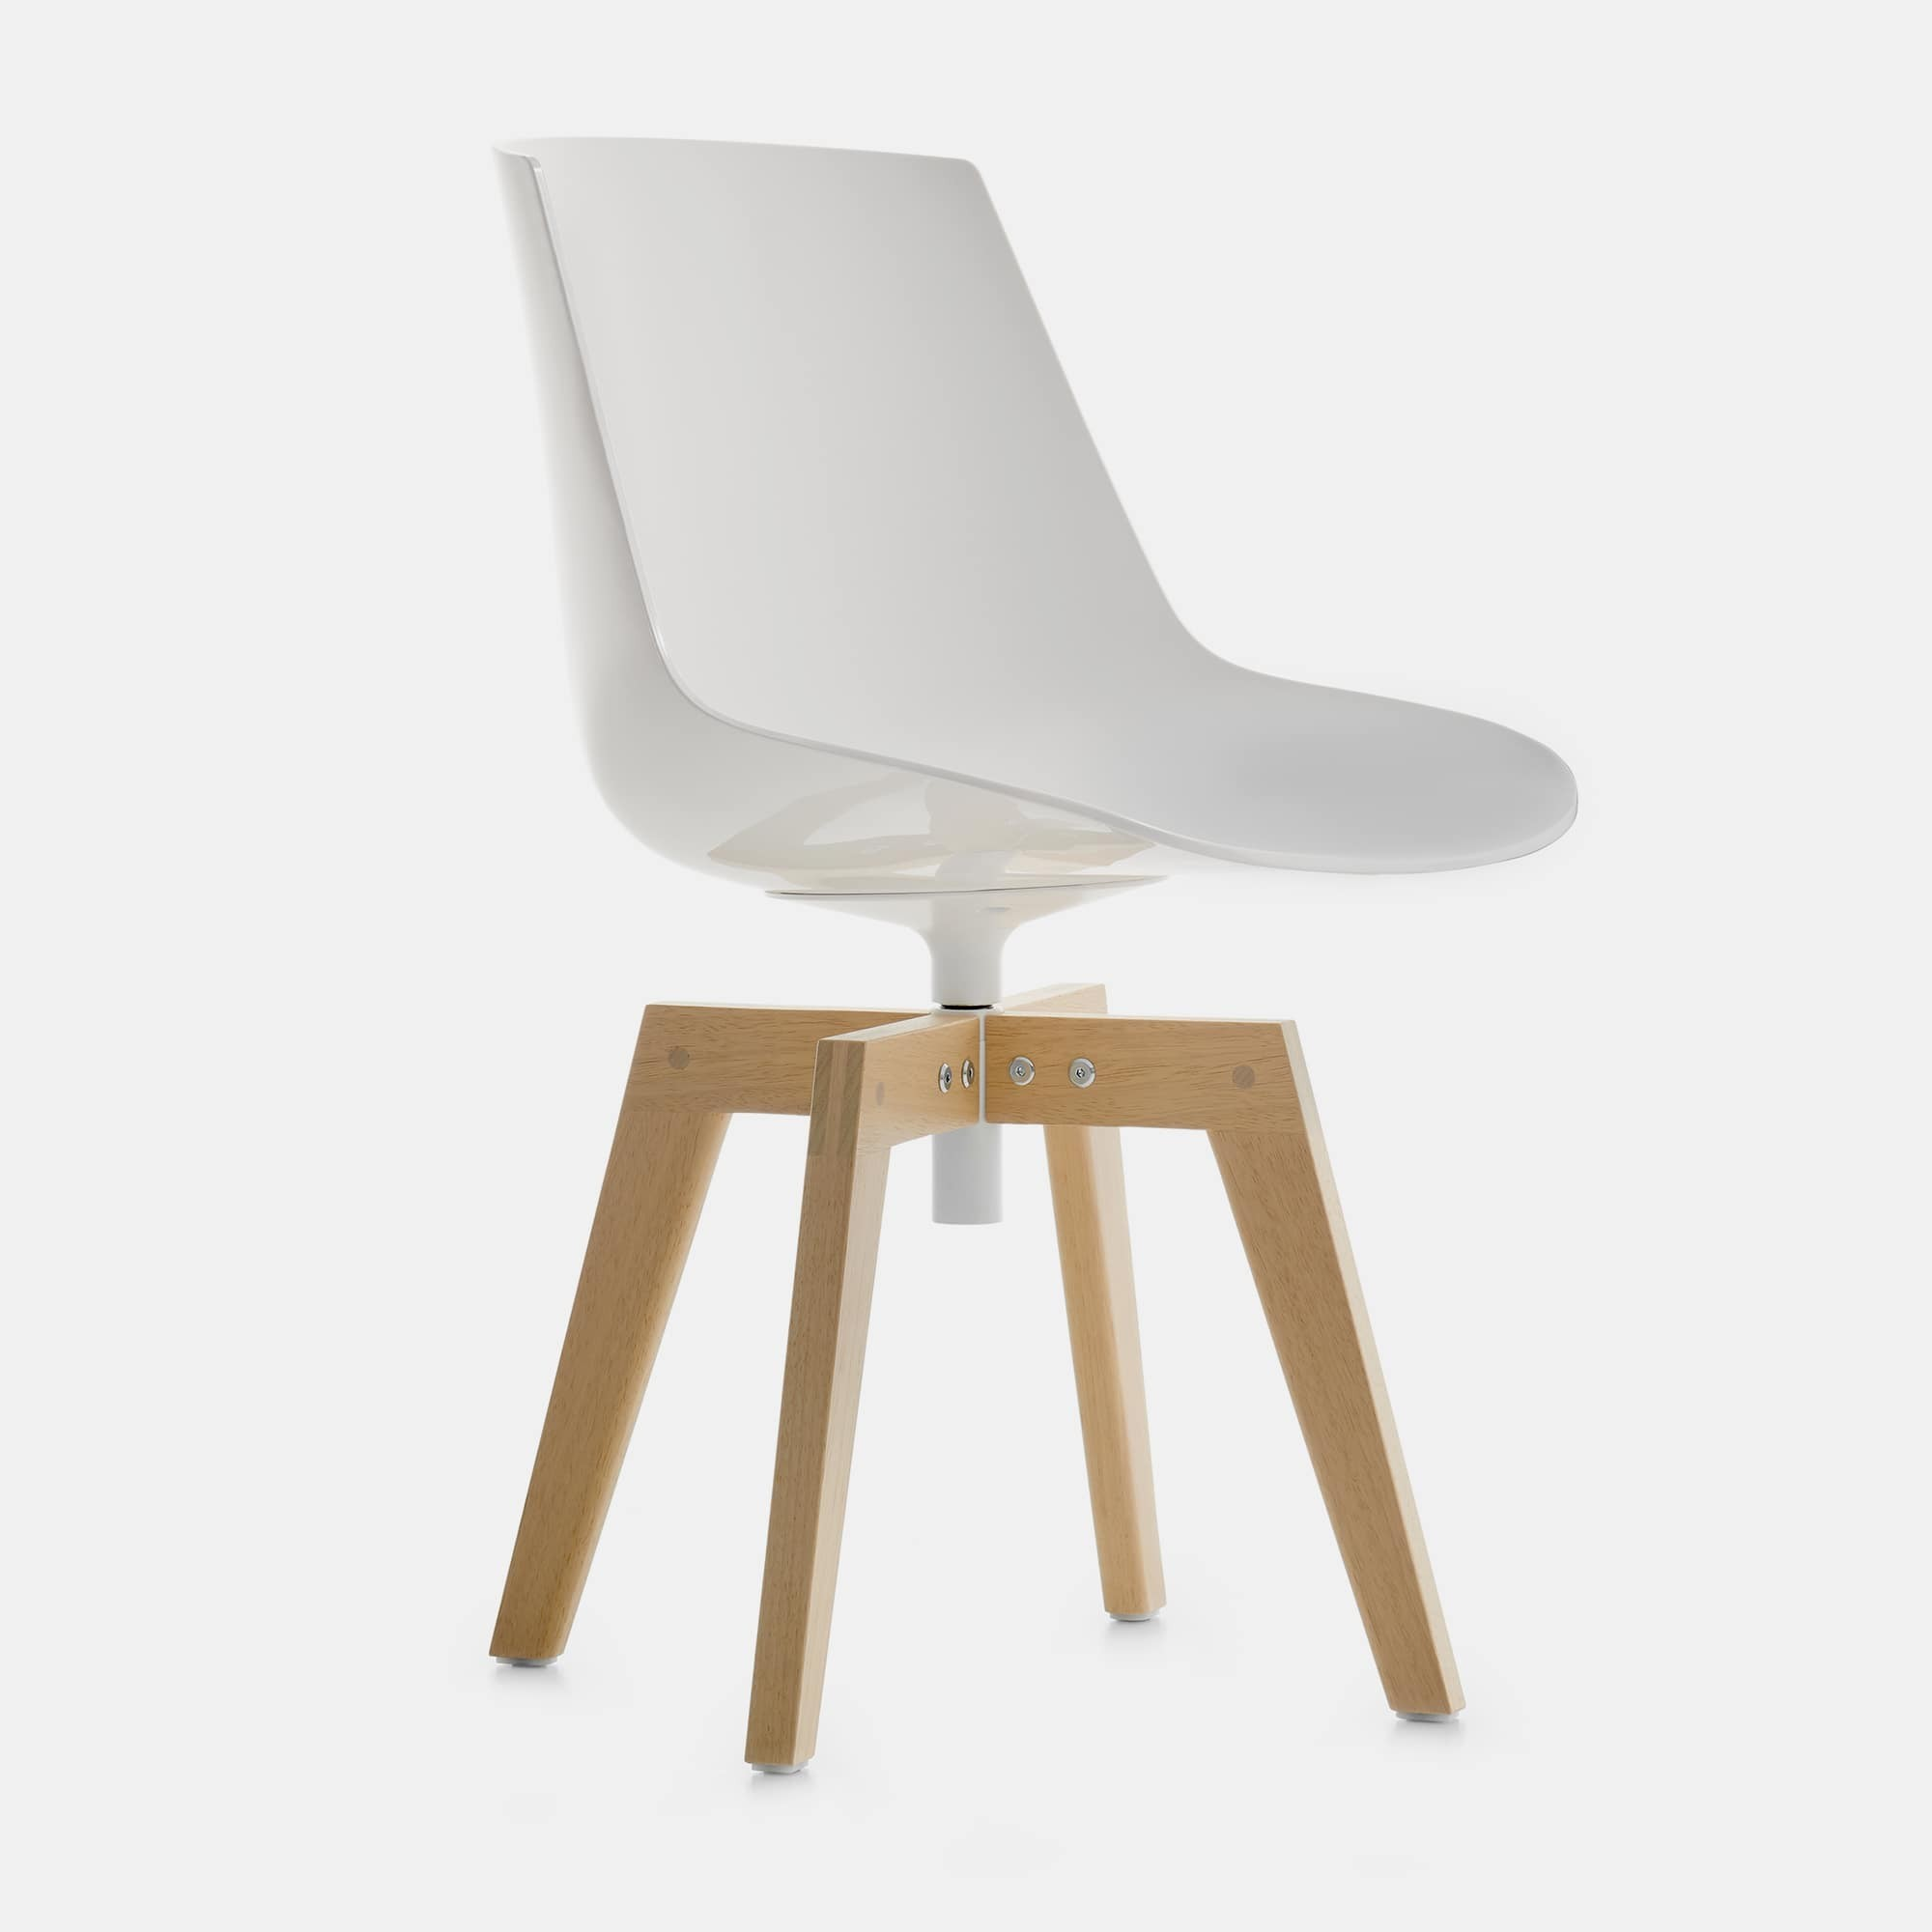 Plastica Stile Giocattoli Vercelli.Flow Chair Iroko Iconic Seat For Outdoor Spaces Mdf Italia